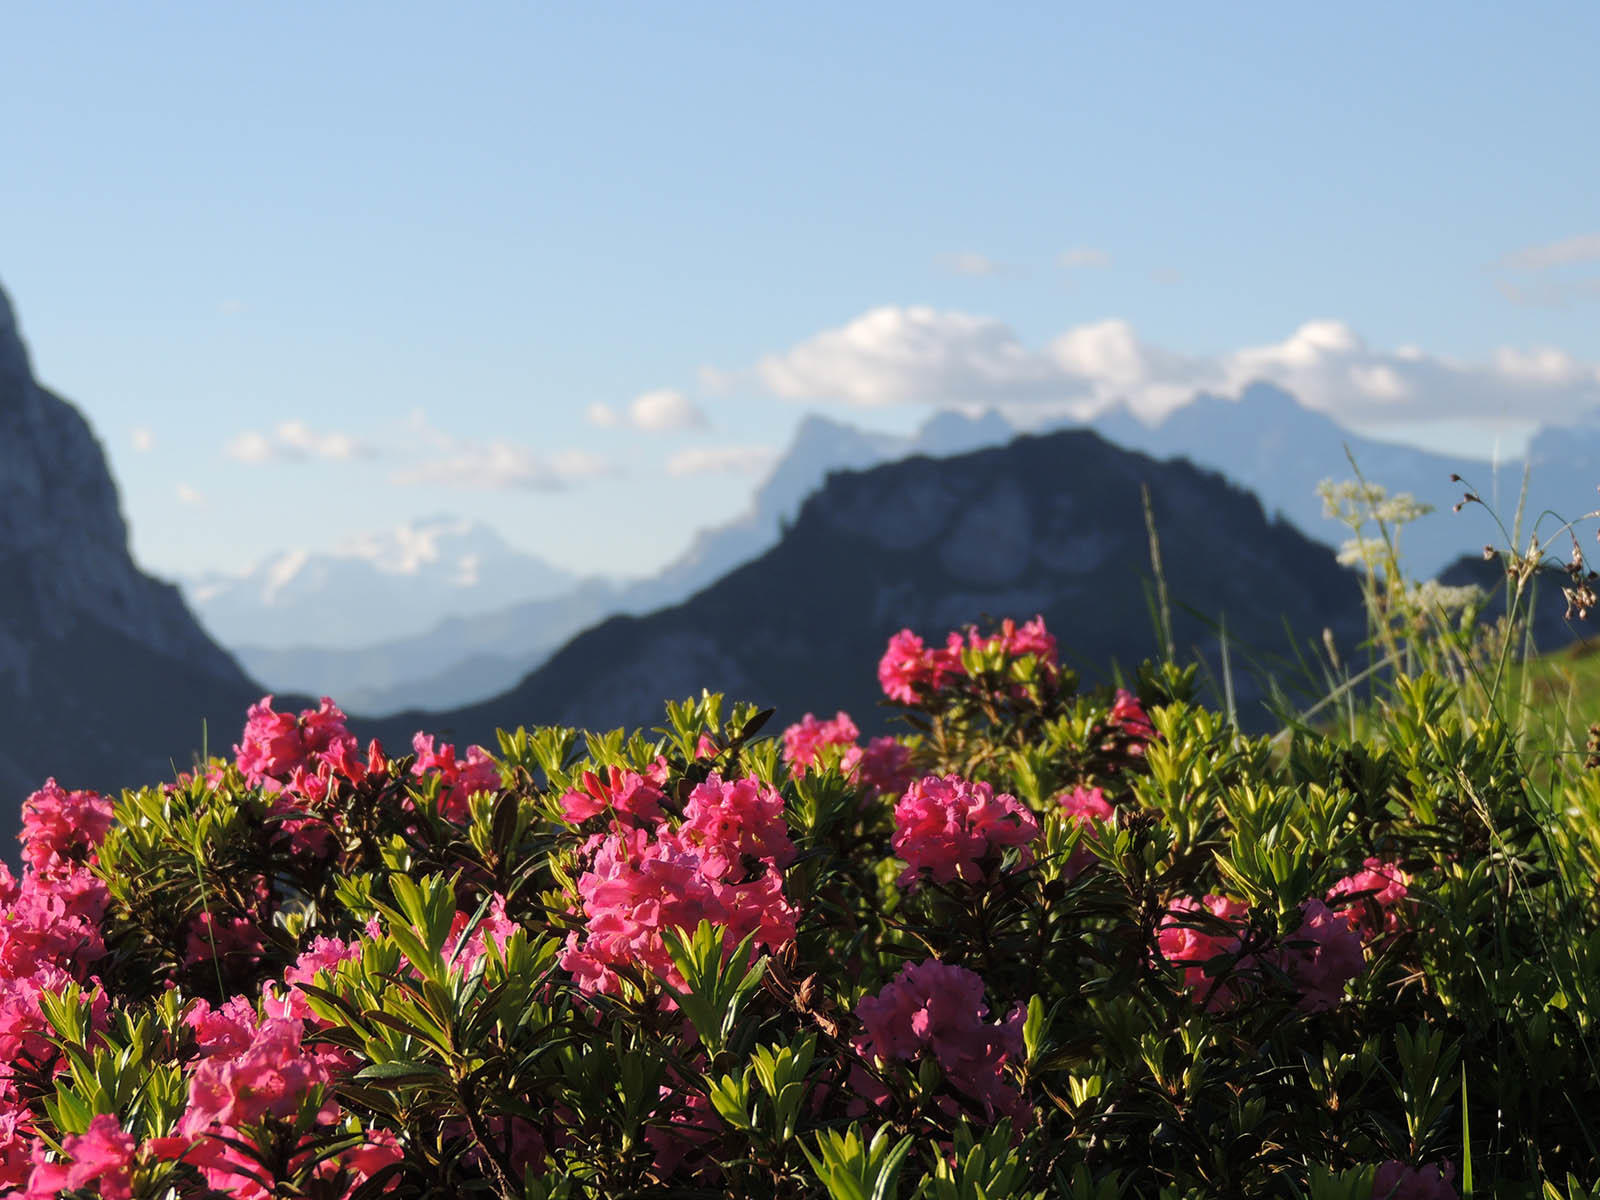 Flowers and Mountains near Hotel Les Gentianettes, The Originals